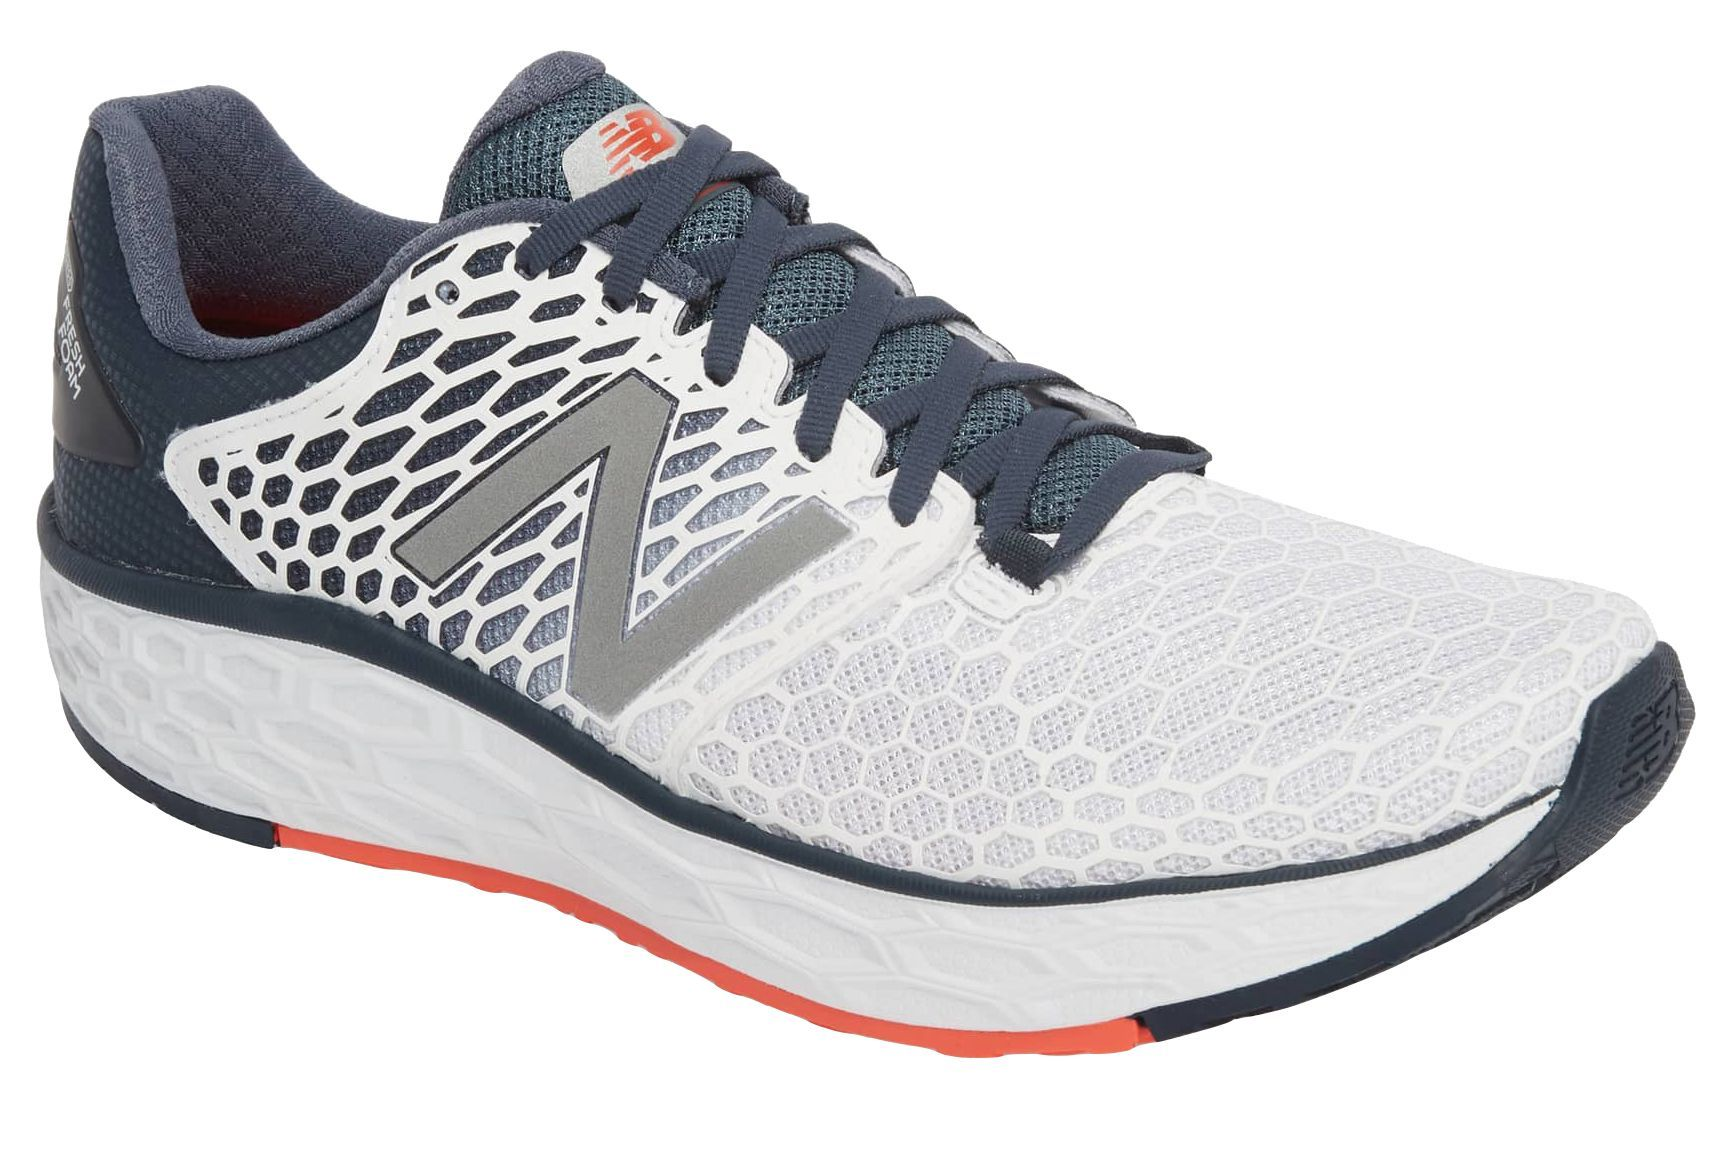 5e28d1b88acc33 13 Best Running Sneakers For Men - Stylish Running Sneakers